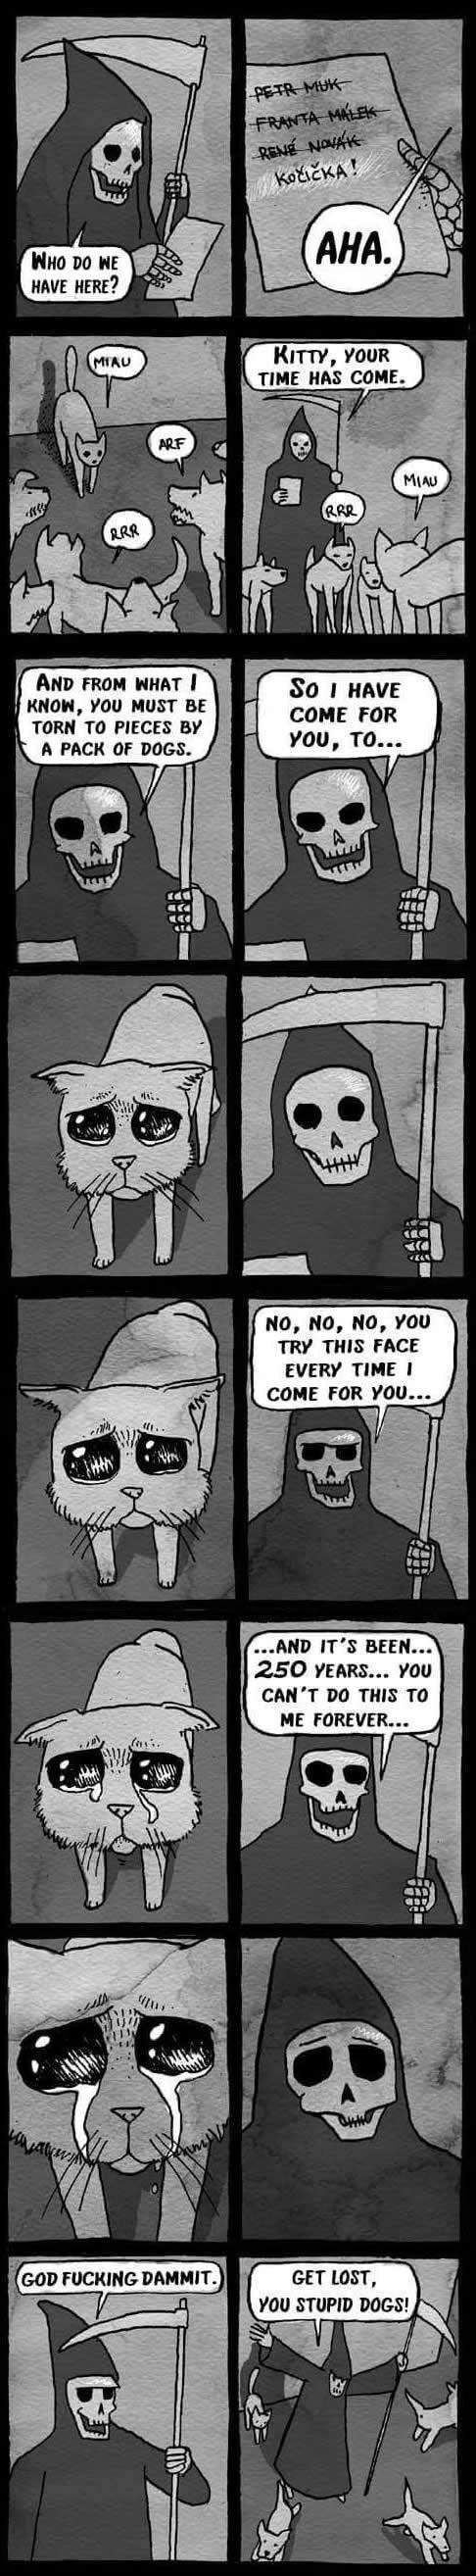 He greeted death as an old friend 9gag he greeted death as an old friend m4hsunfo